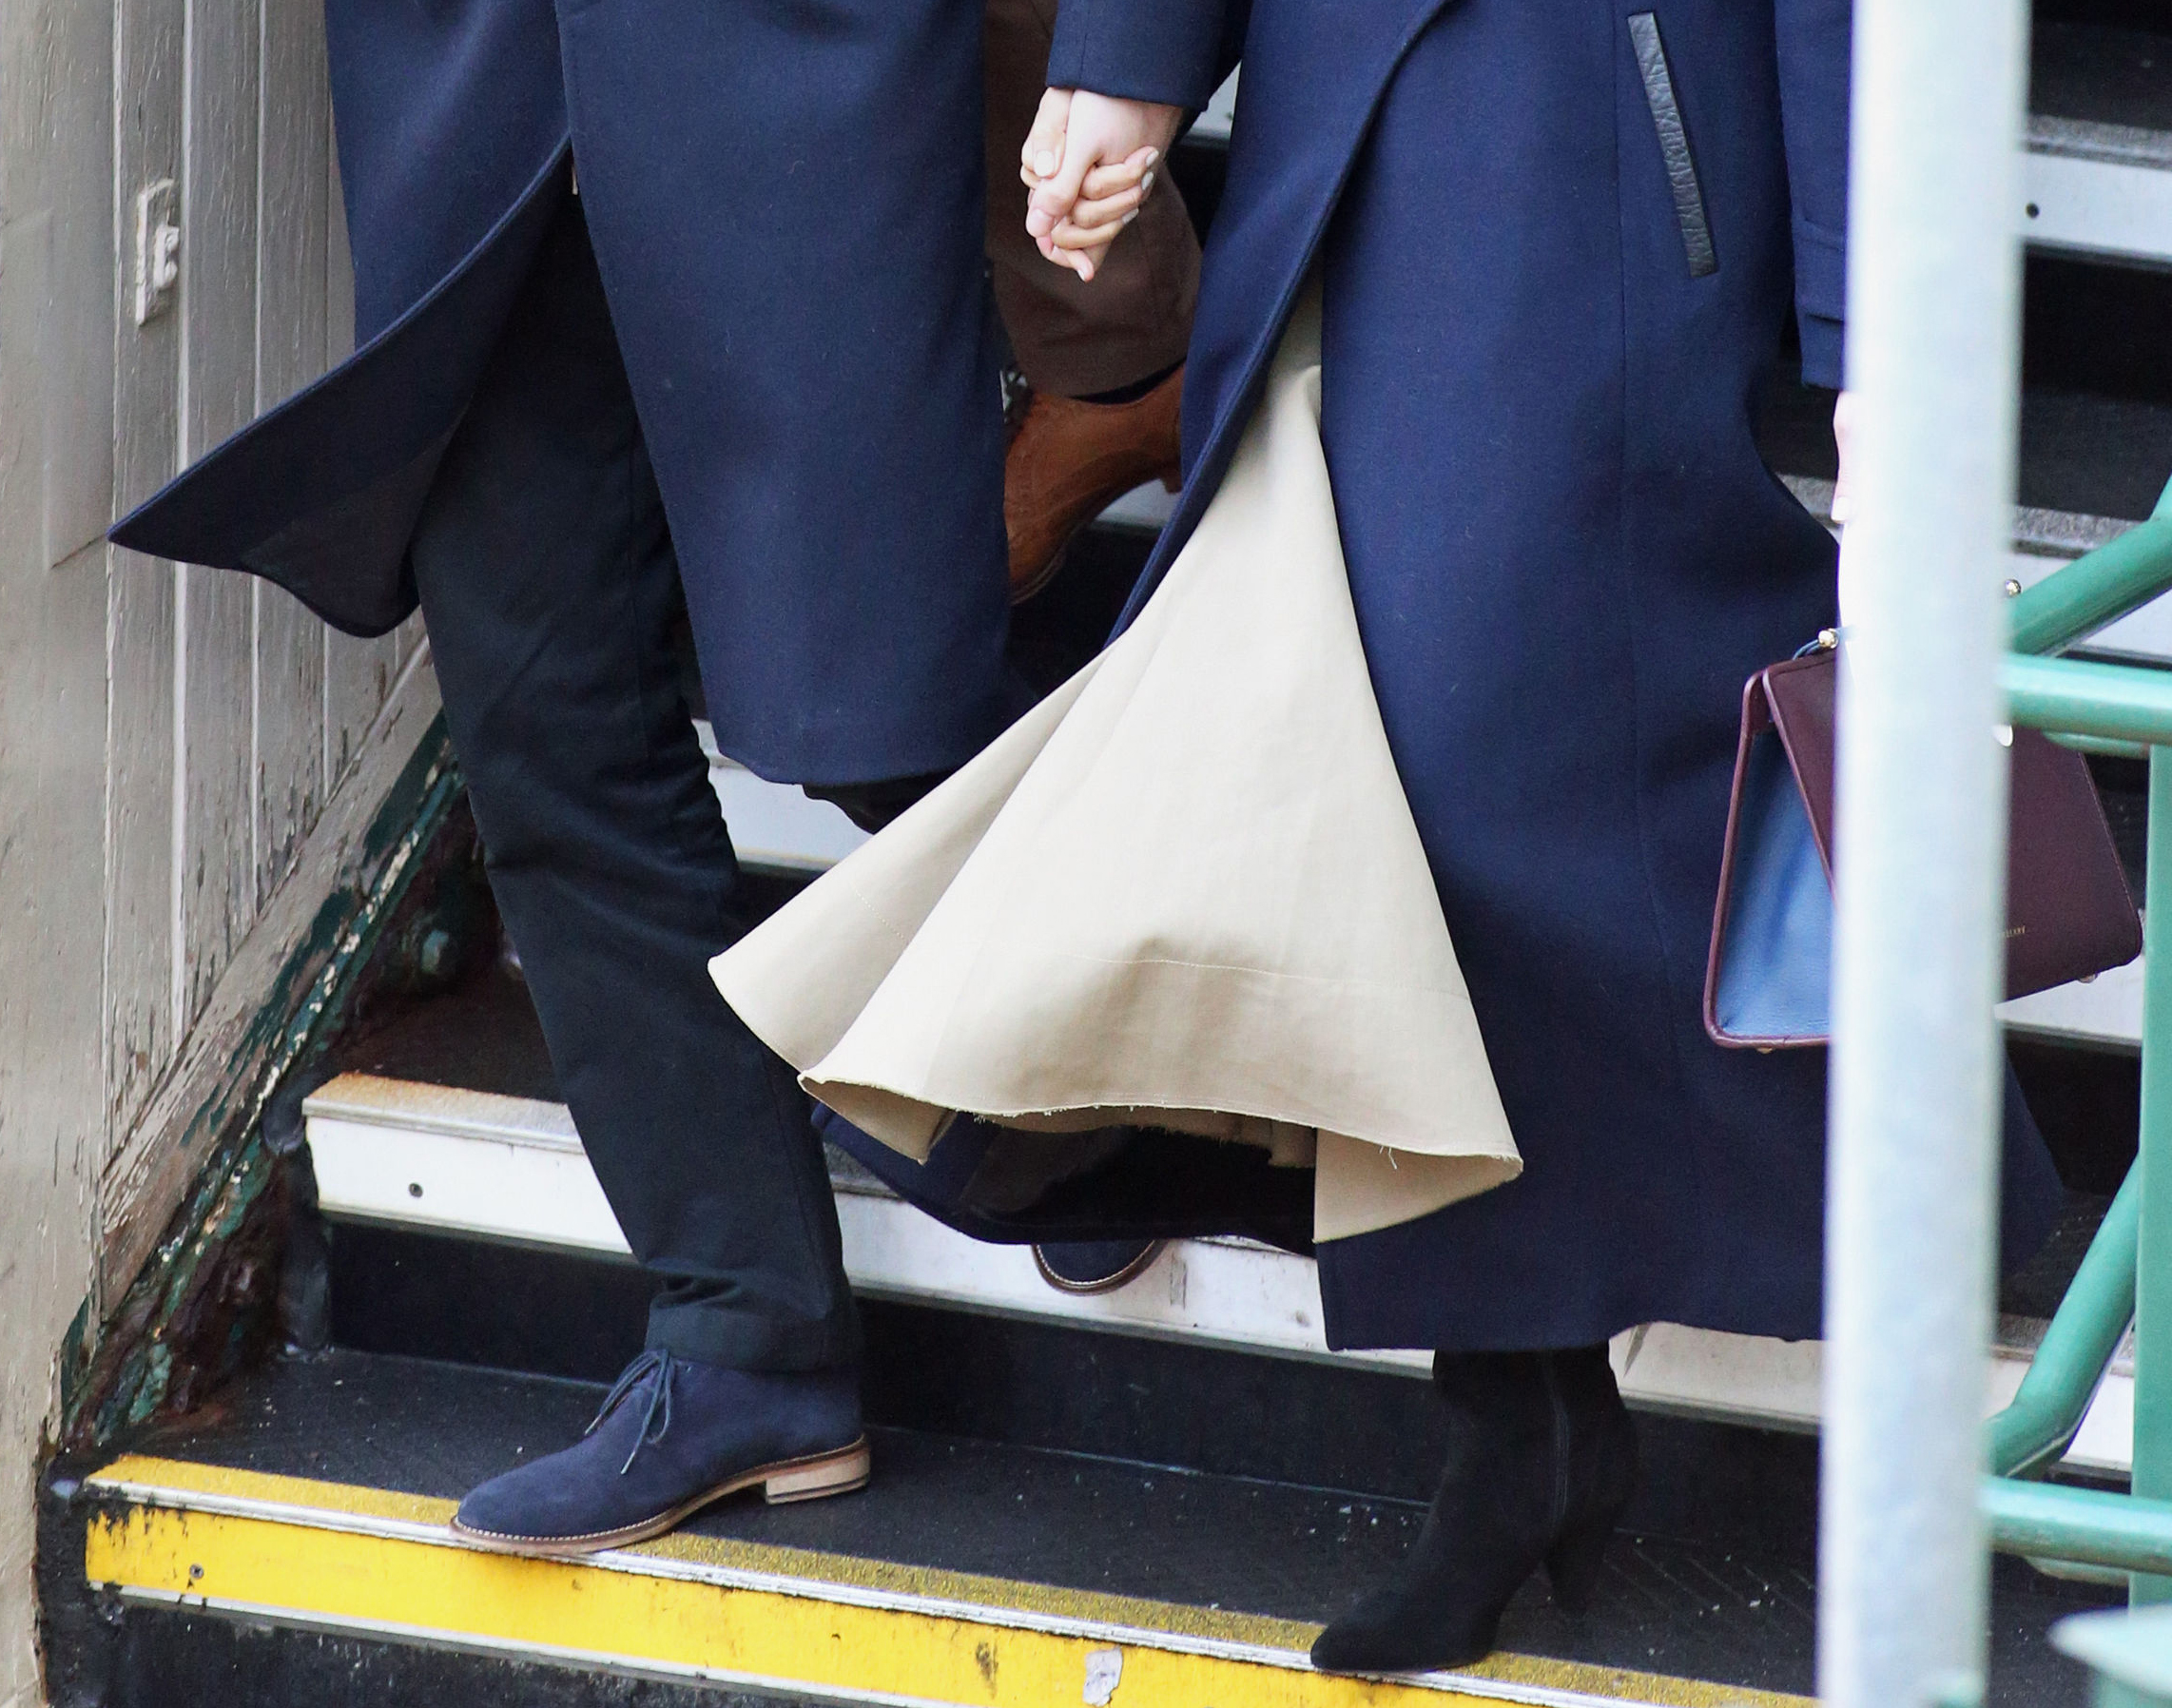 Prince Harry and Meghan Markle arrive at Nottingham Station ahead of their first official engagement together (Steve Parsons/PA)